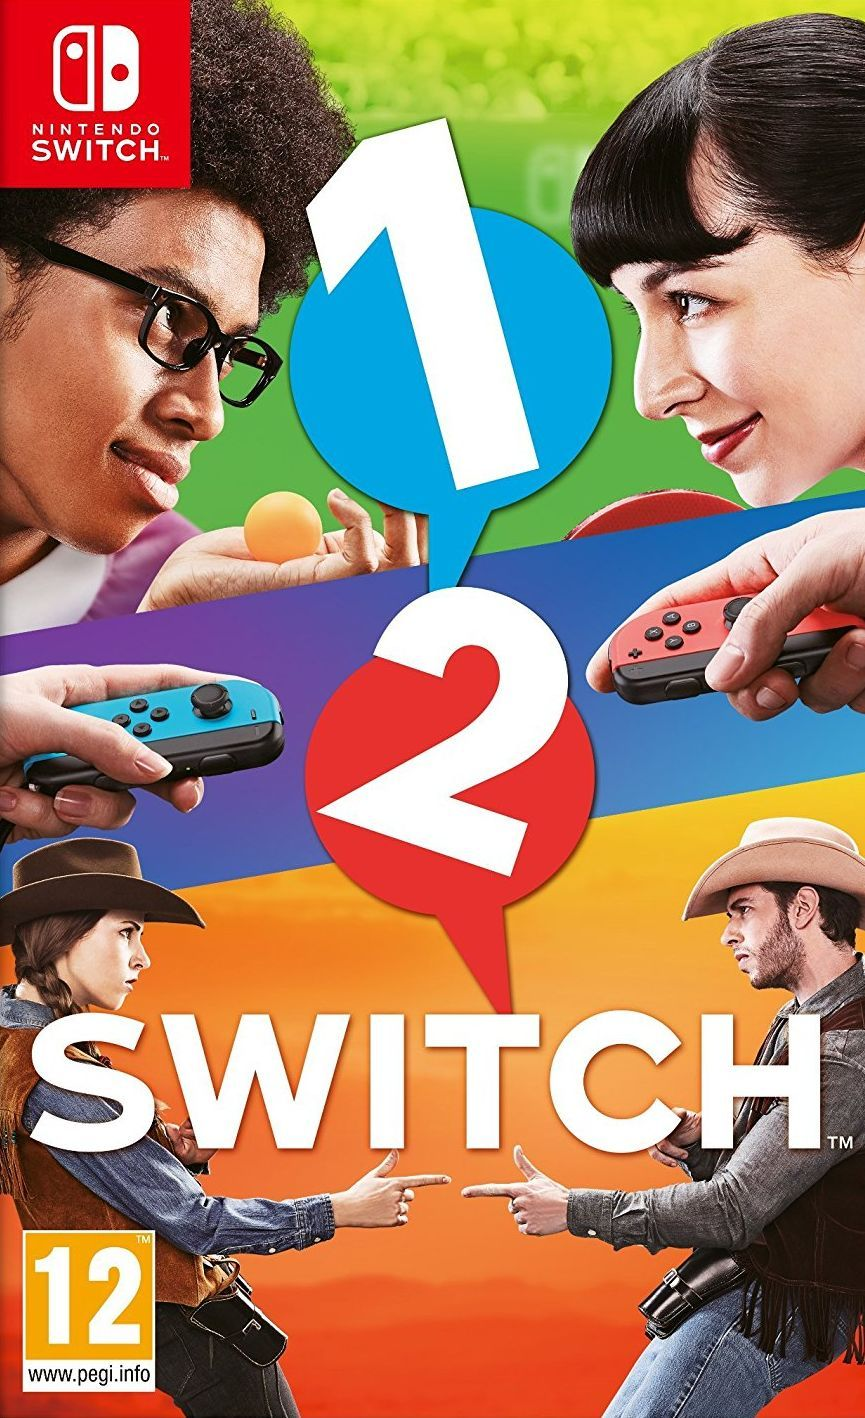 1-2 Switch (Nintendo Switch) - 1